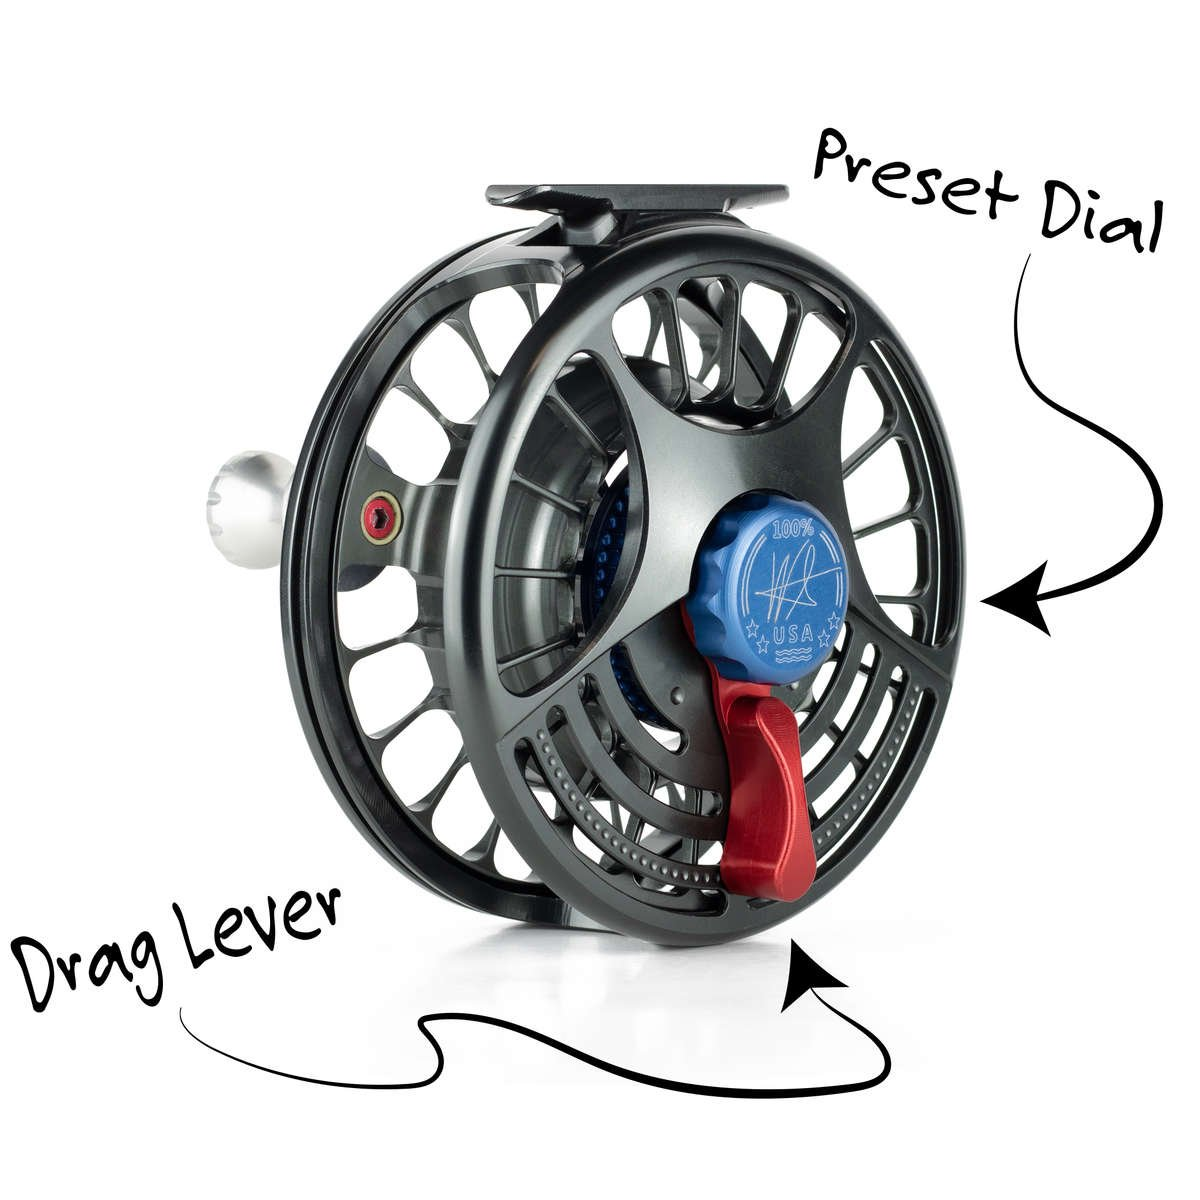 Seigler saltwater fly fishing reel with lever drag and preset dial.